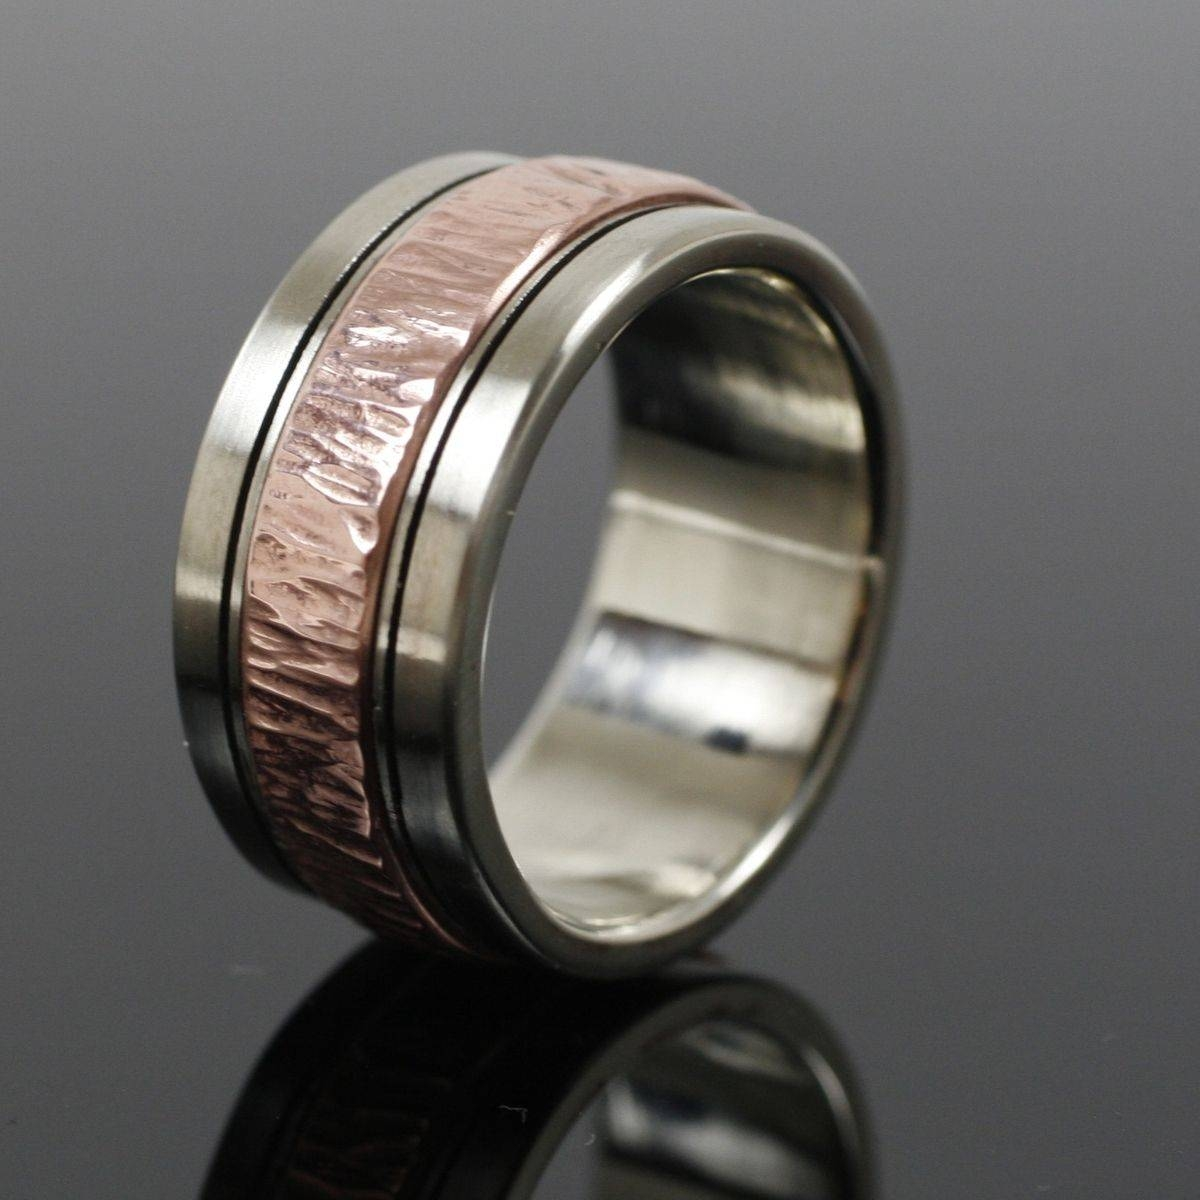 Handmade Wedding Rings | Custommade Within Non Metal Mens Wedding Bands (View 4 of 30)